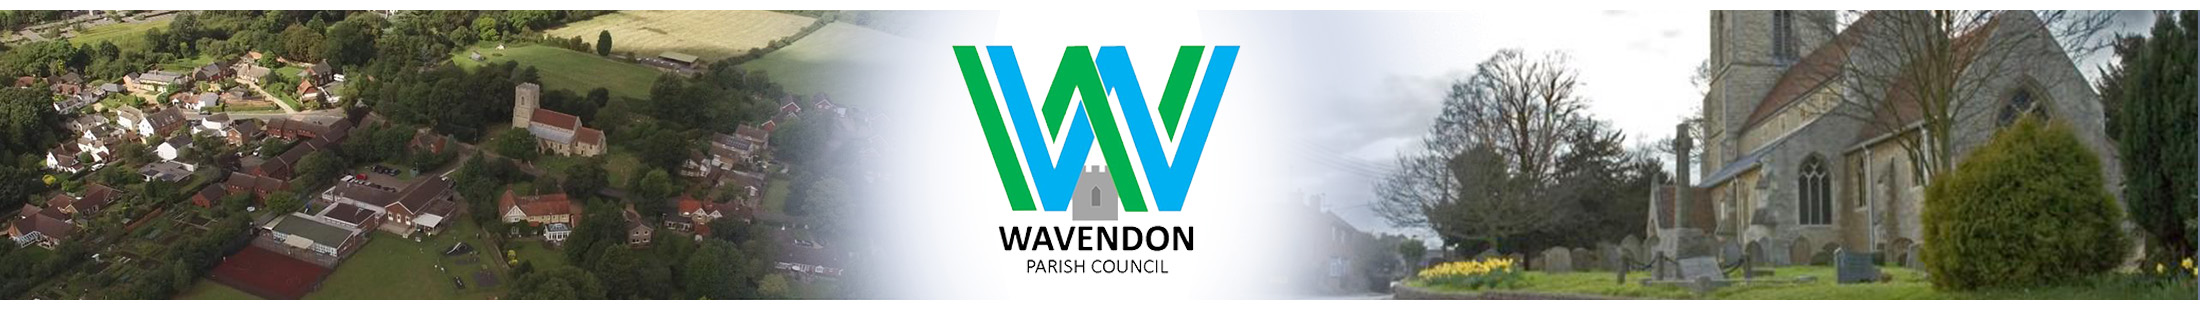 Header Image for Wavendon Parish Council